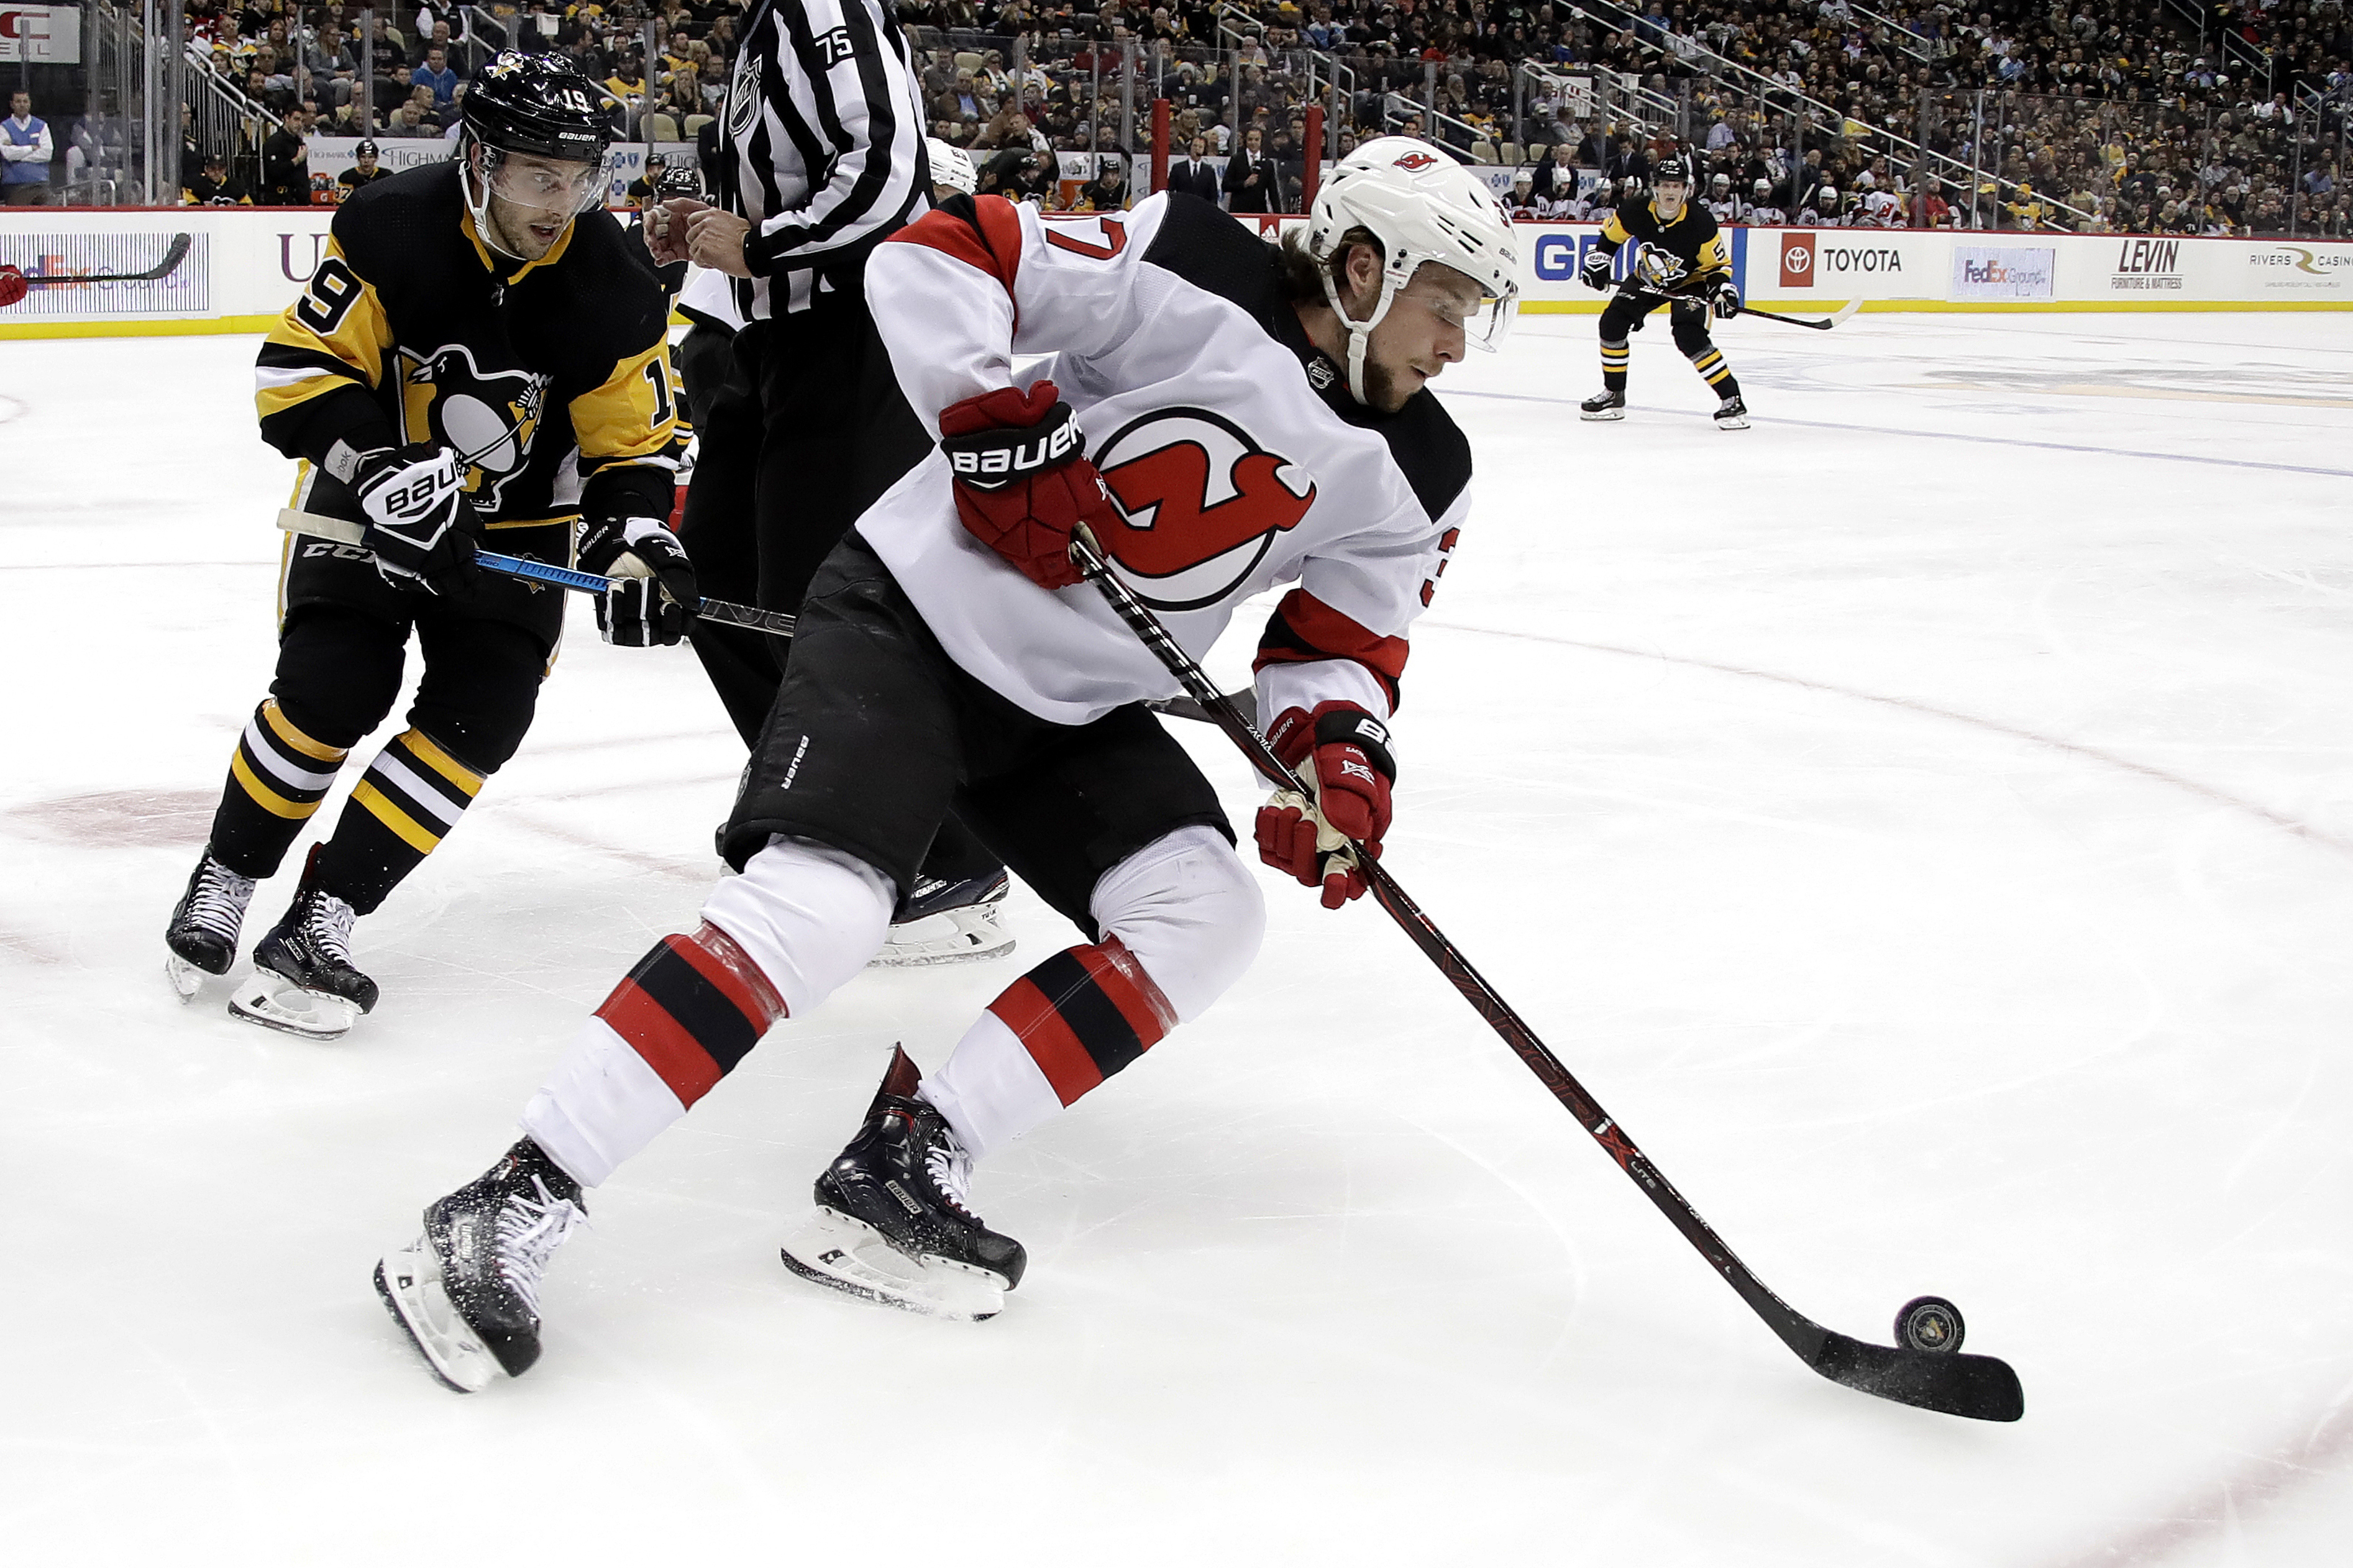 Devils GM doesn't care if Zacha considers signing with KHL